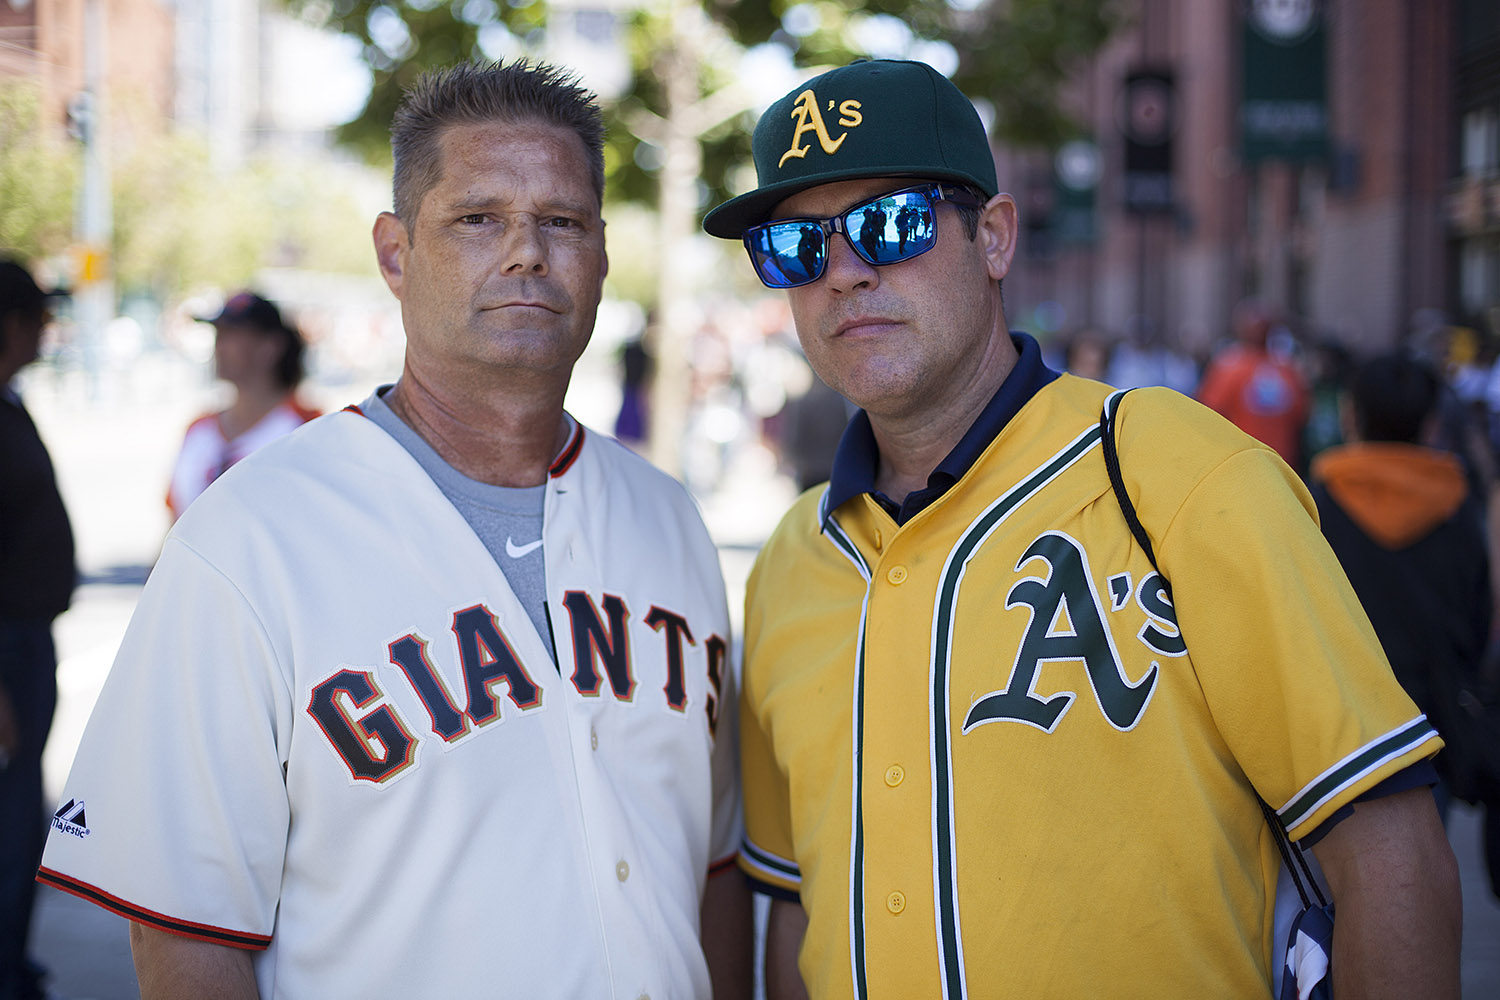 It's A's Over Giants, and the Fans React